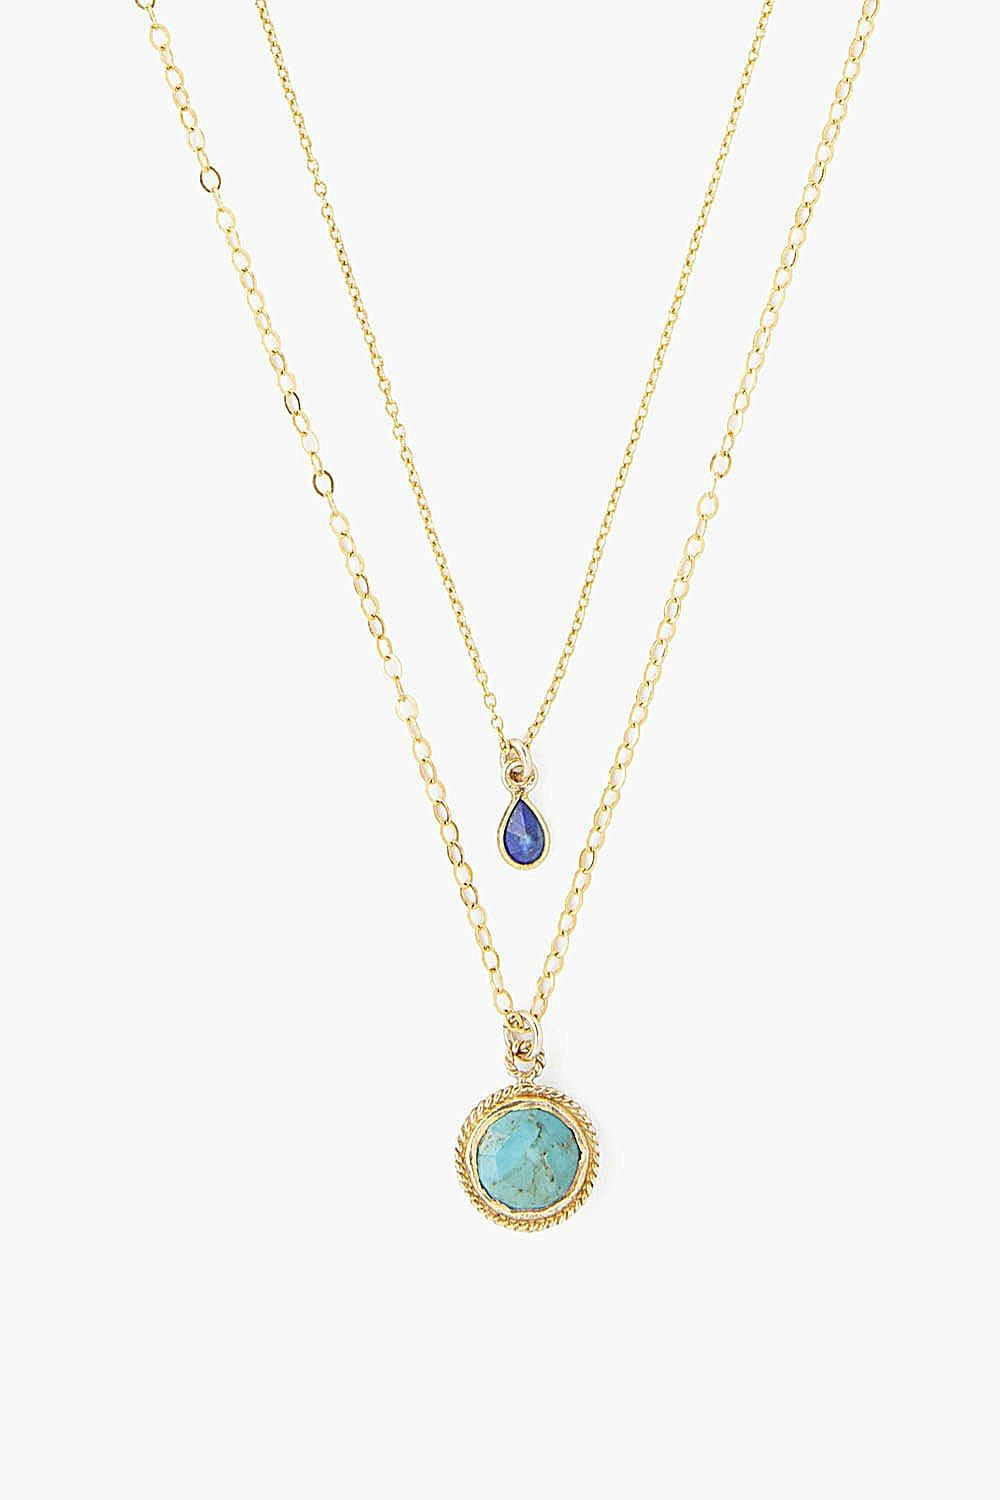 Turquoise Mix Teardrop Pre-Layered Necklace